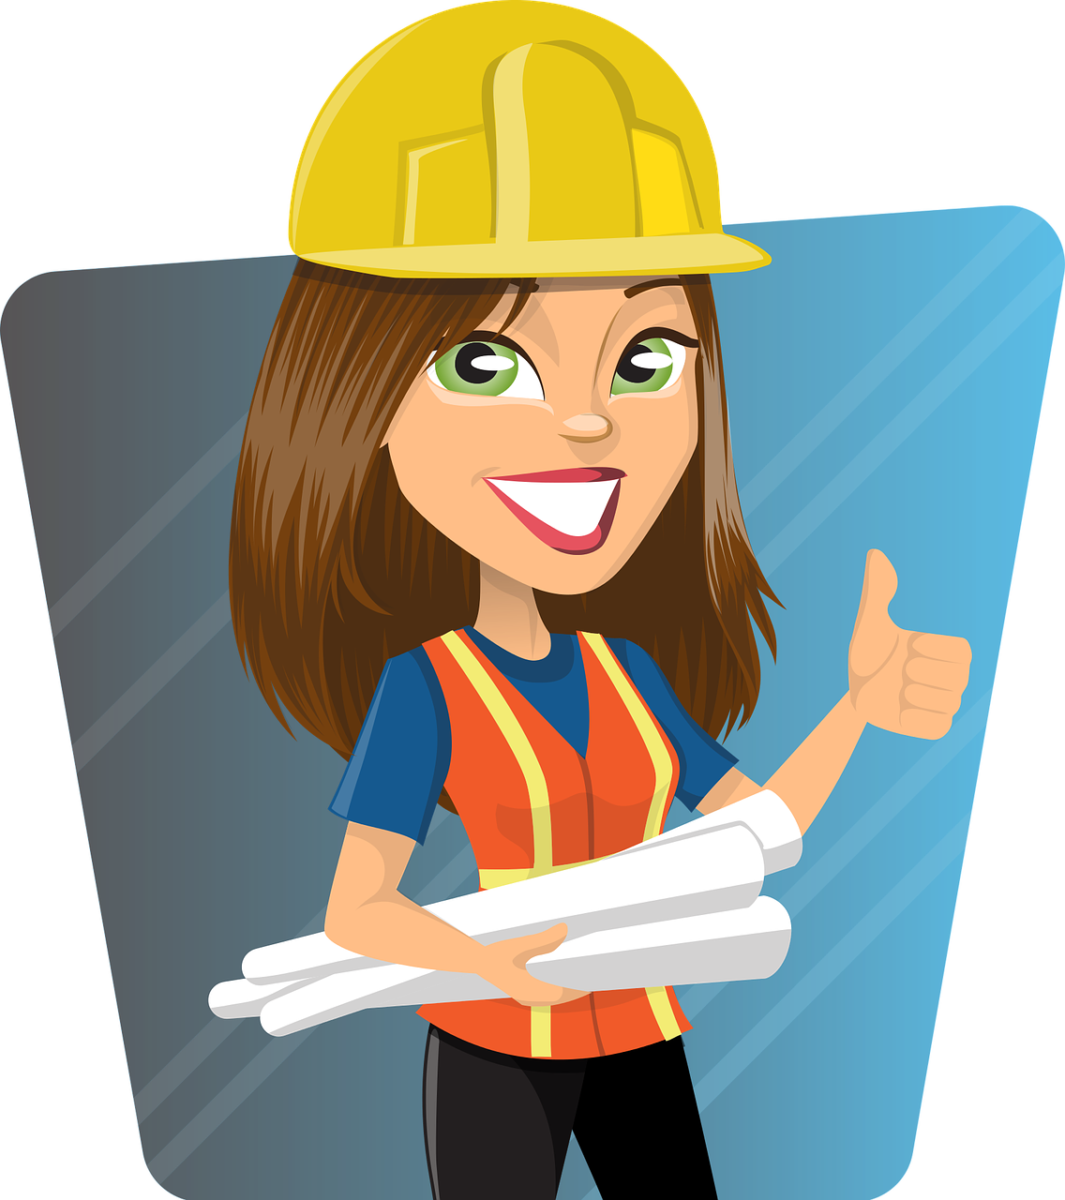 Contractor clipart project coordinator. Do you need a